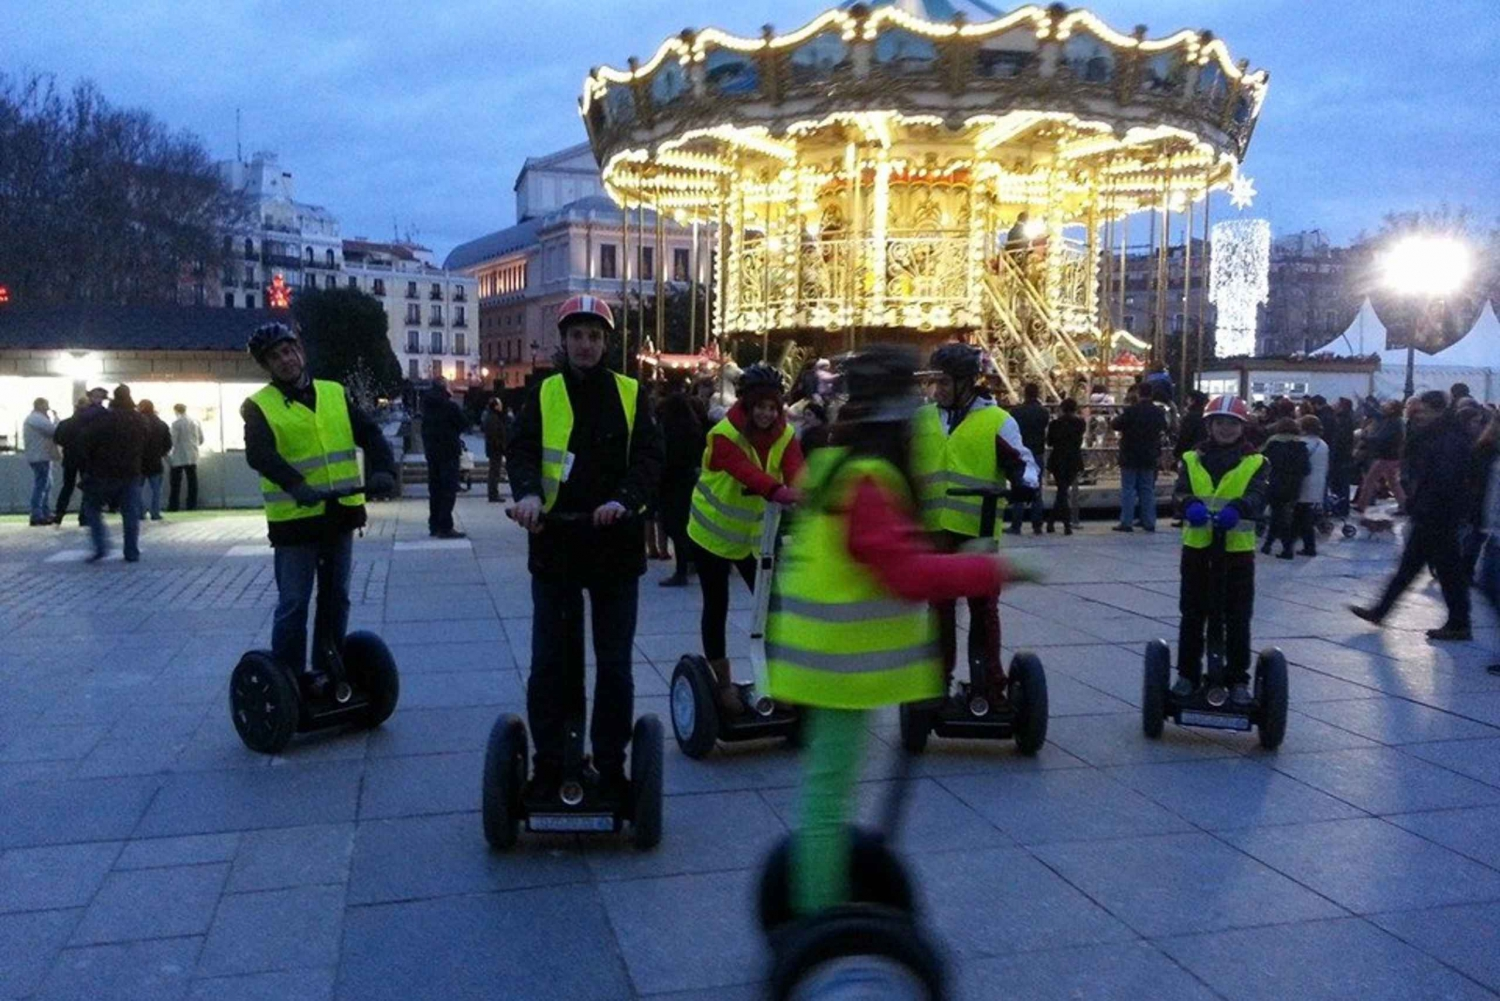 Madrid by Night: 1-Hour Segway Tour